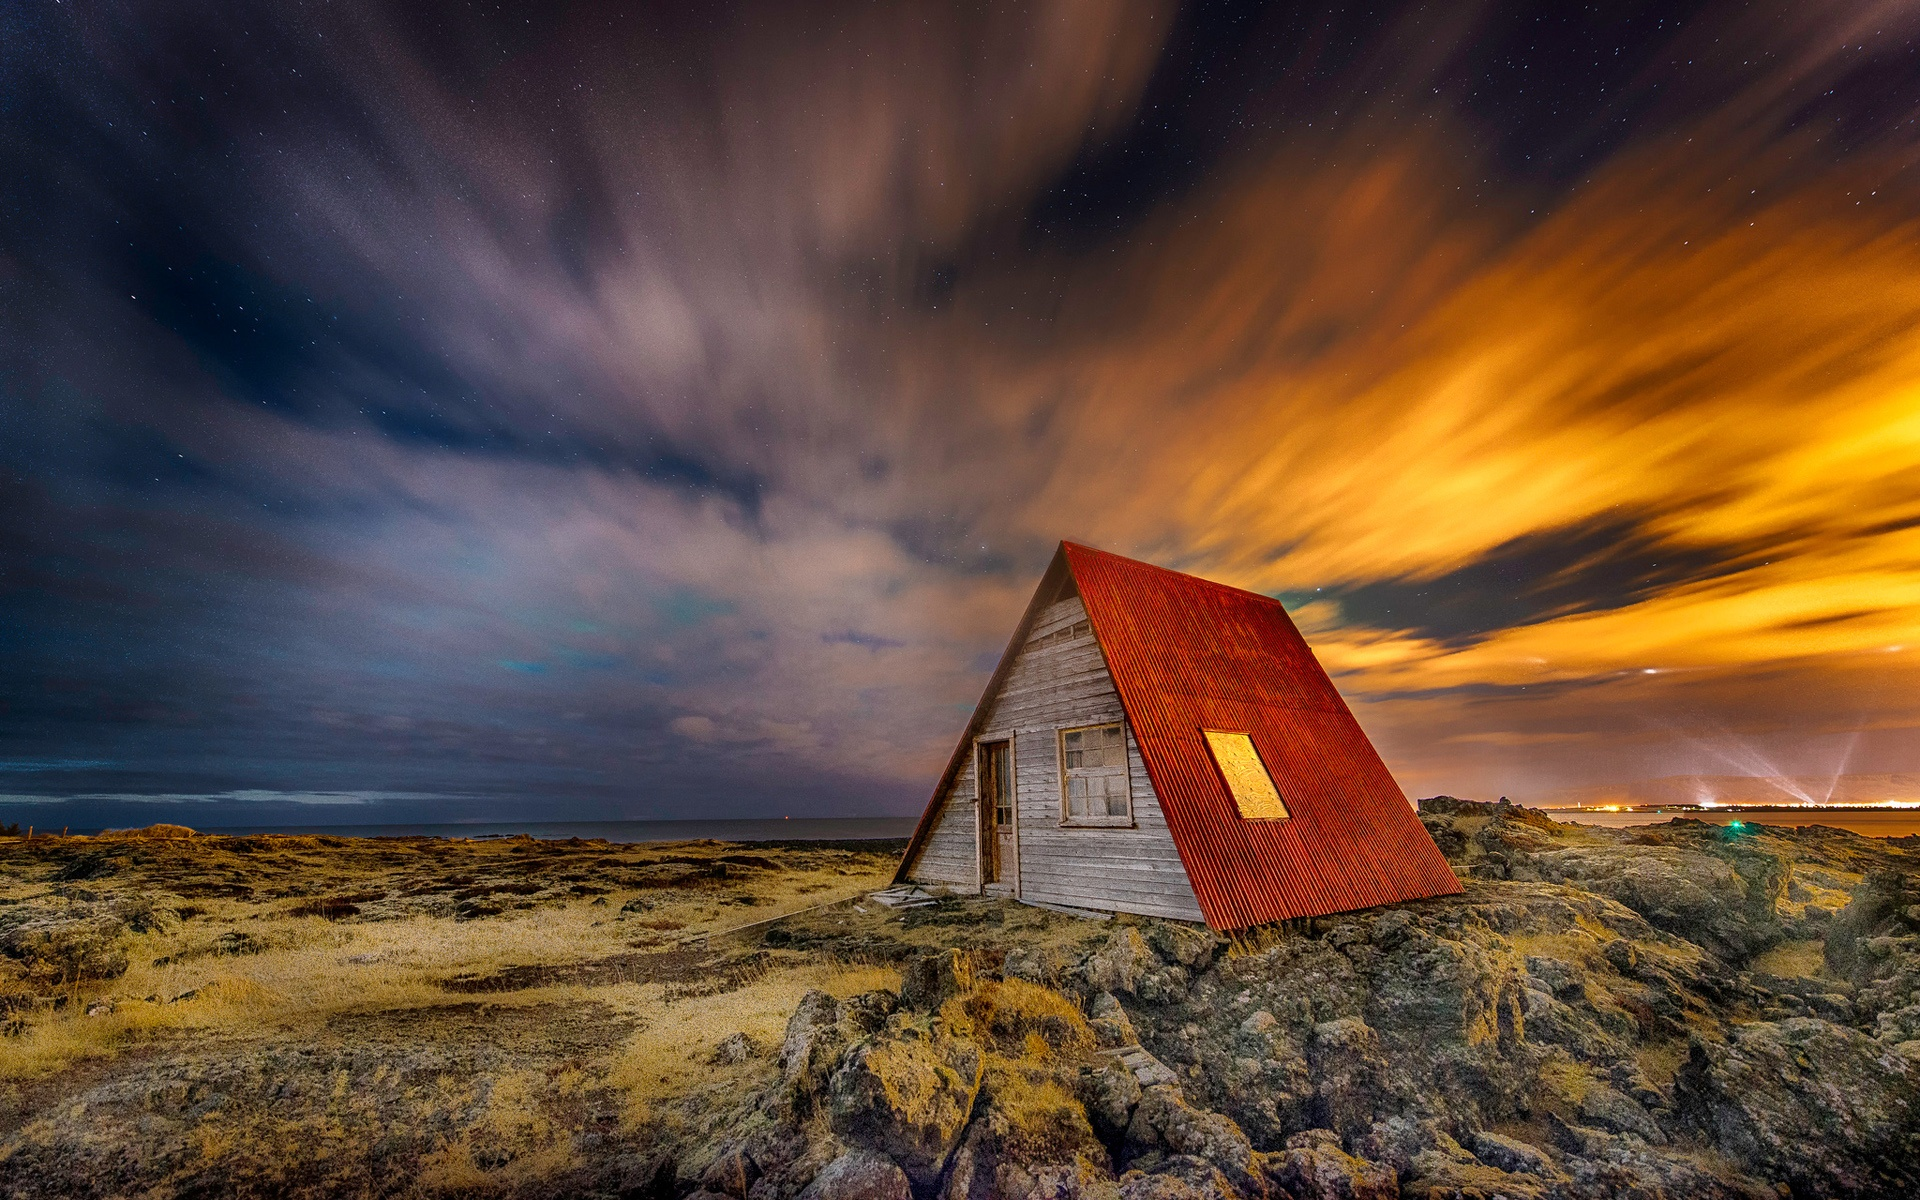 Download Wallpaper 1920x1200 Iceland Night Scenery House